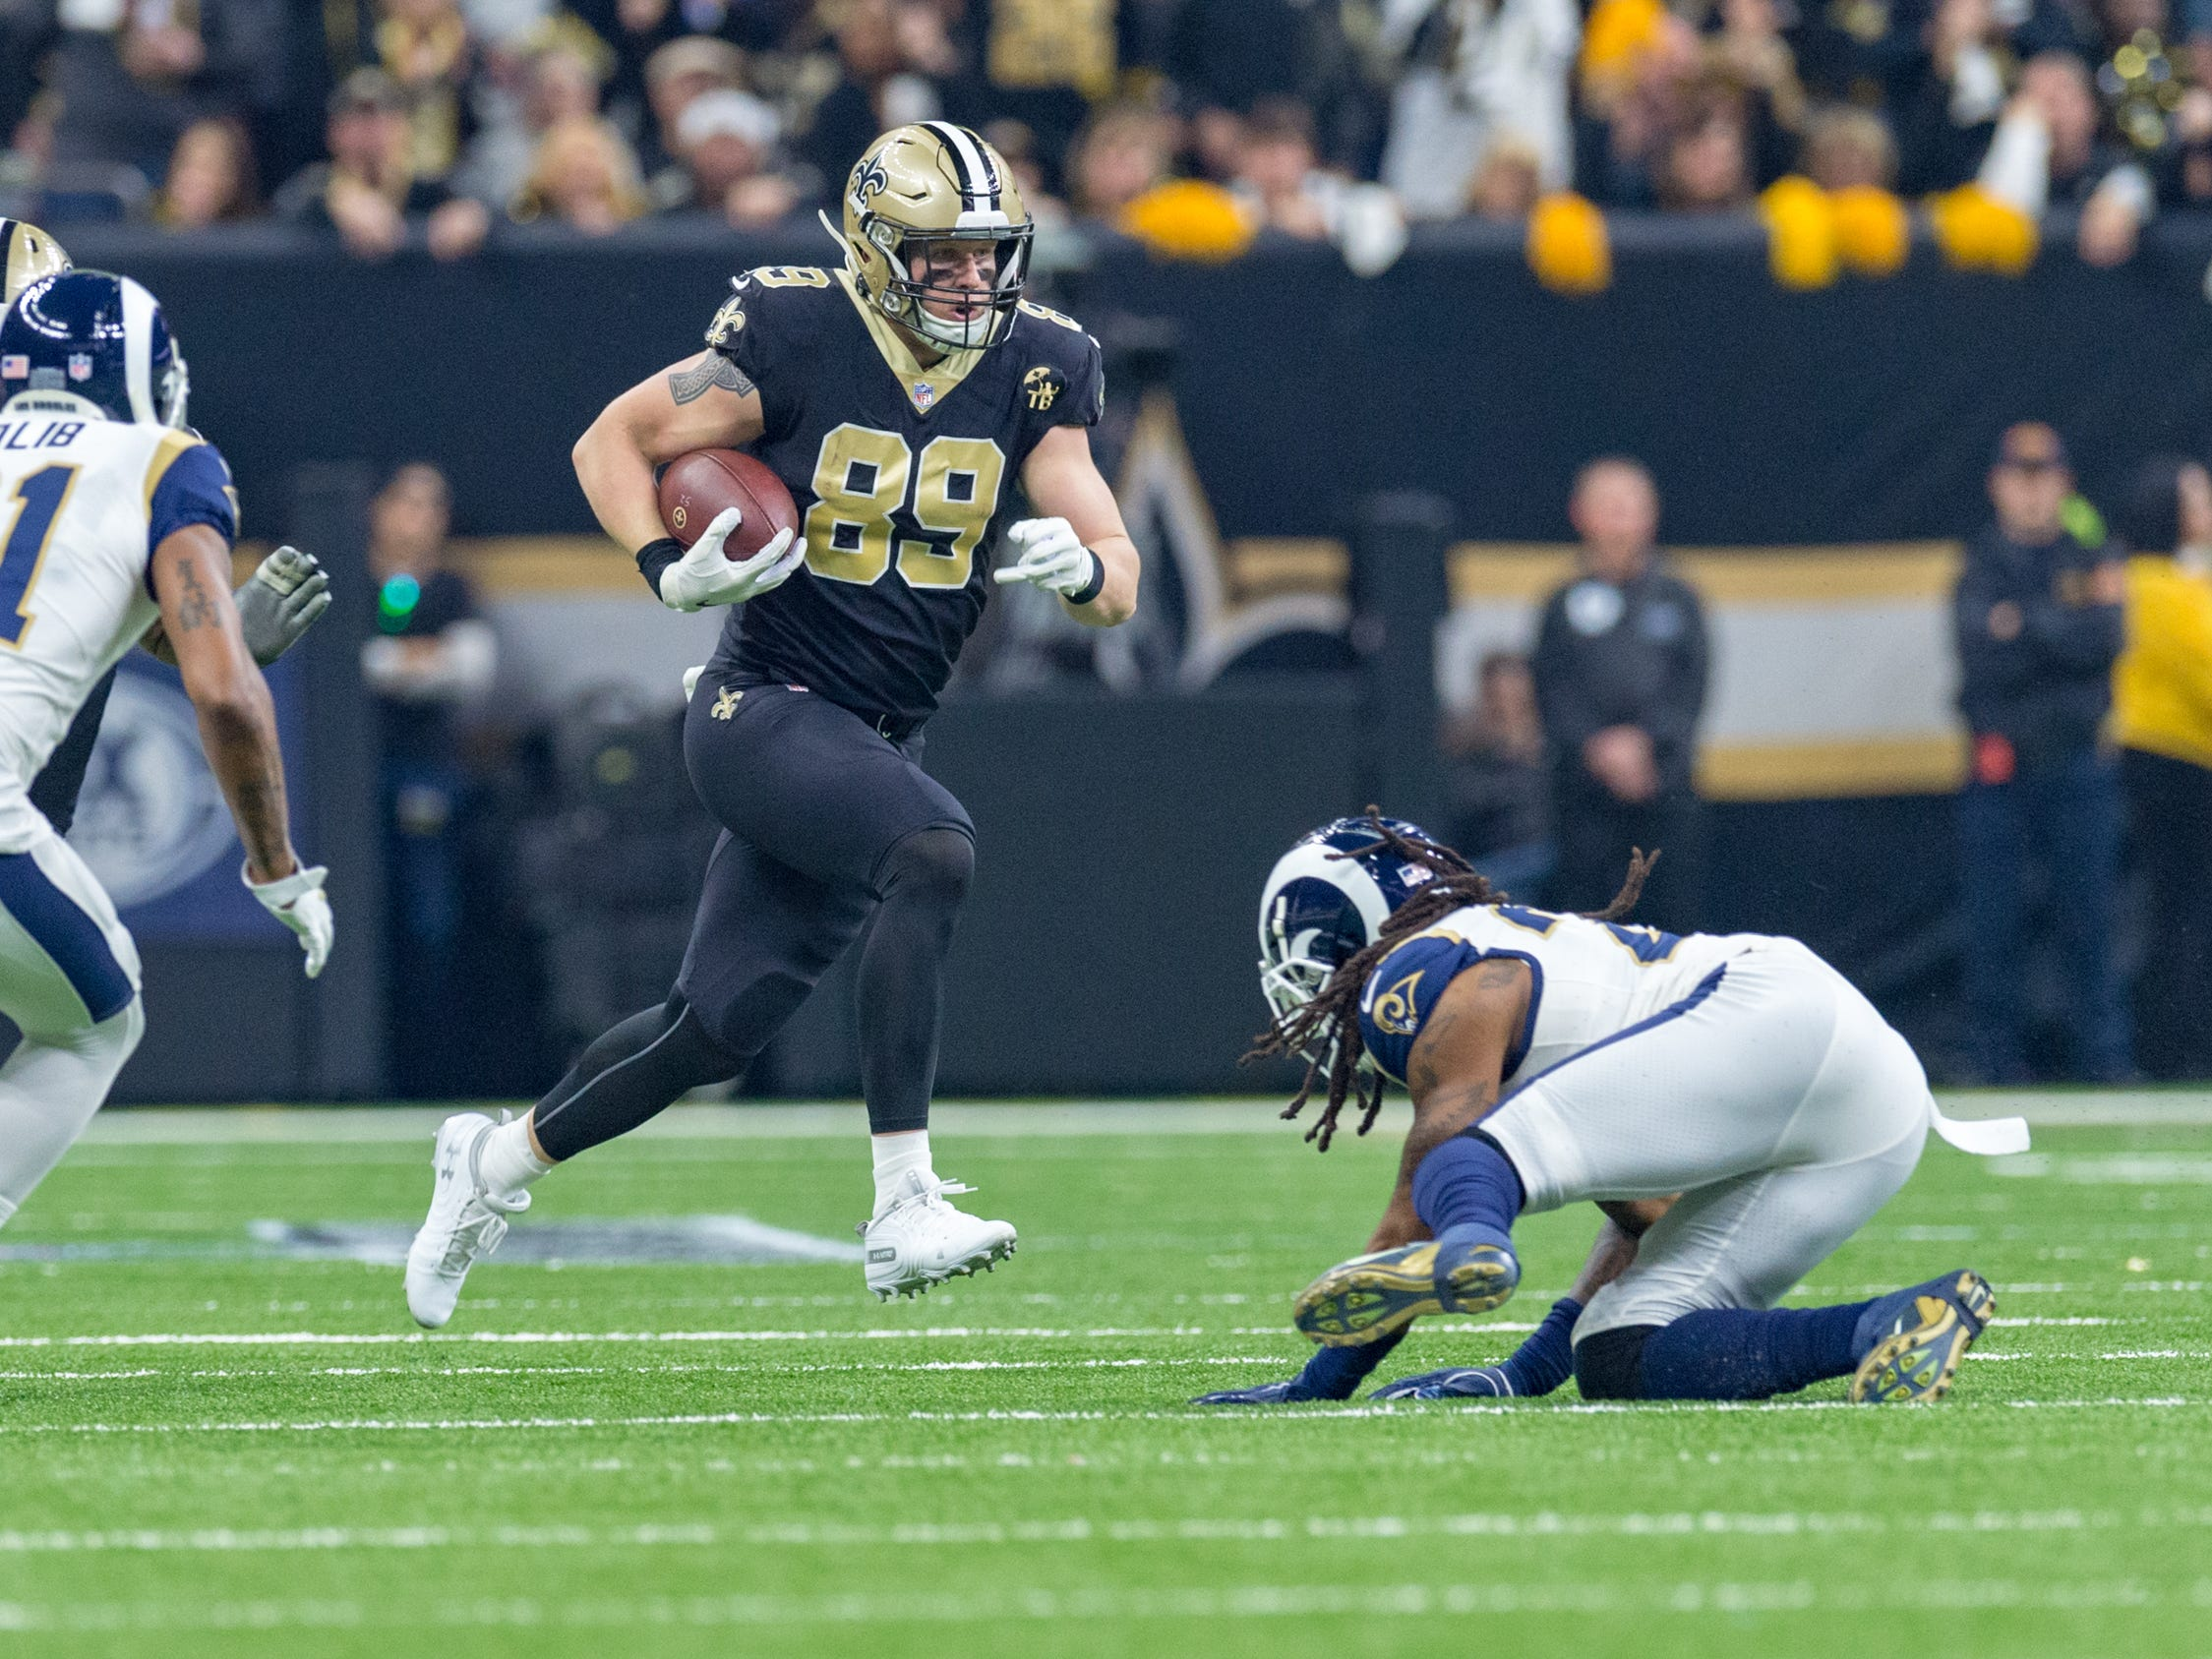 Saints tight end Josh Hill runs the ball during the NFC Championship playoff football game between the New Orleans Saints and the Los Angeles Rams at the Mercedes-Benz Superdome in New Orleans. Sunday, Jan. 20, 2019.